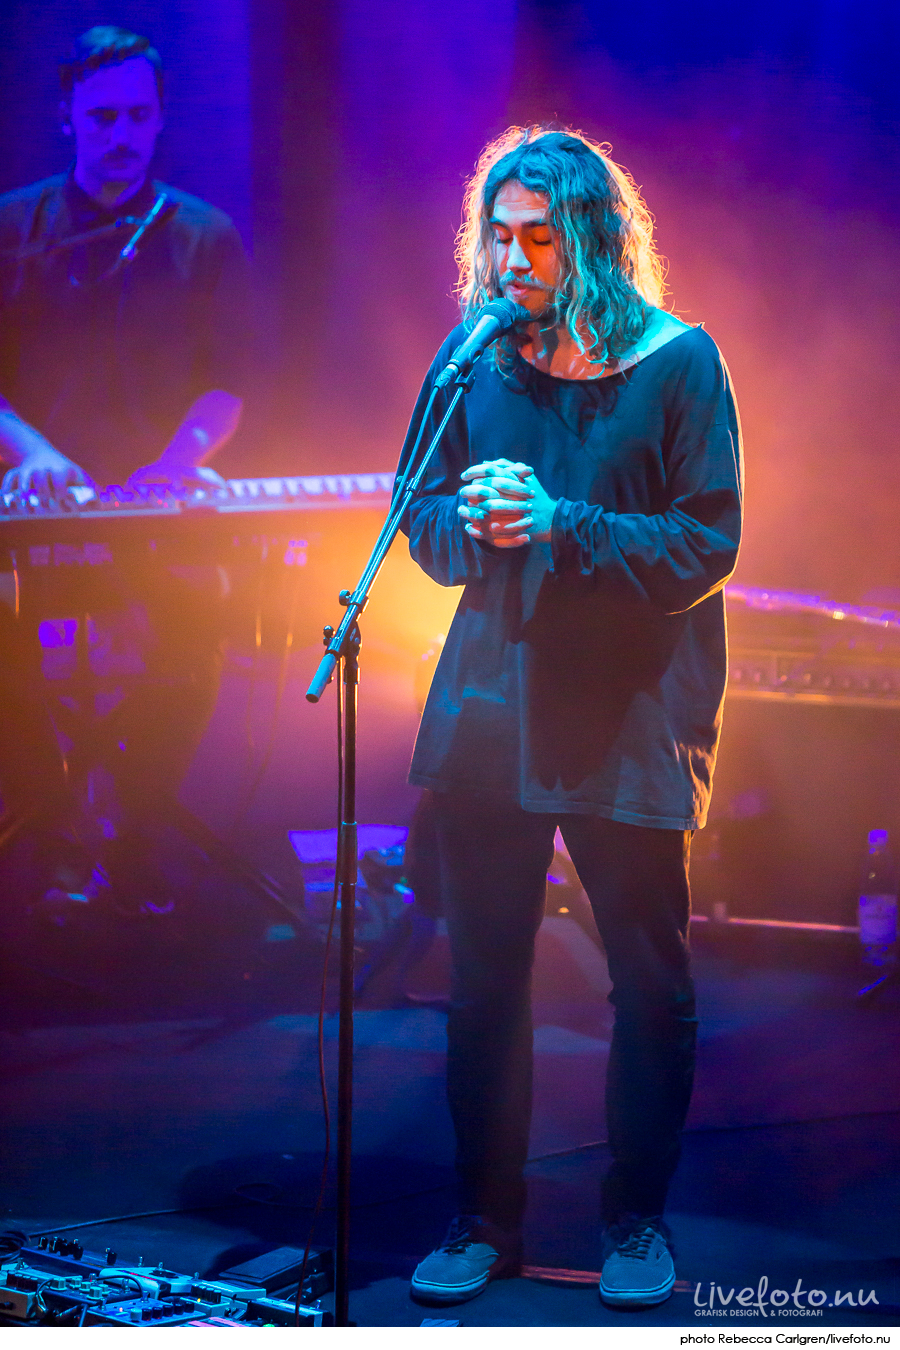 160321-Matt-Corby_photo_Rebecca-Carlgren_livefoto.nu_-28